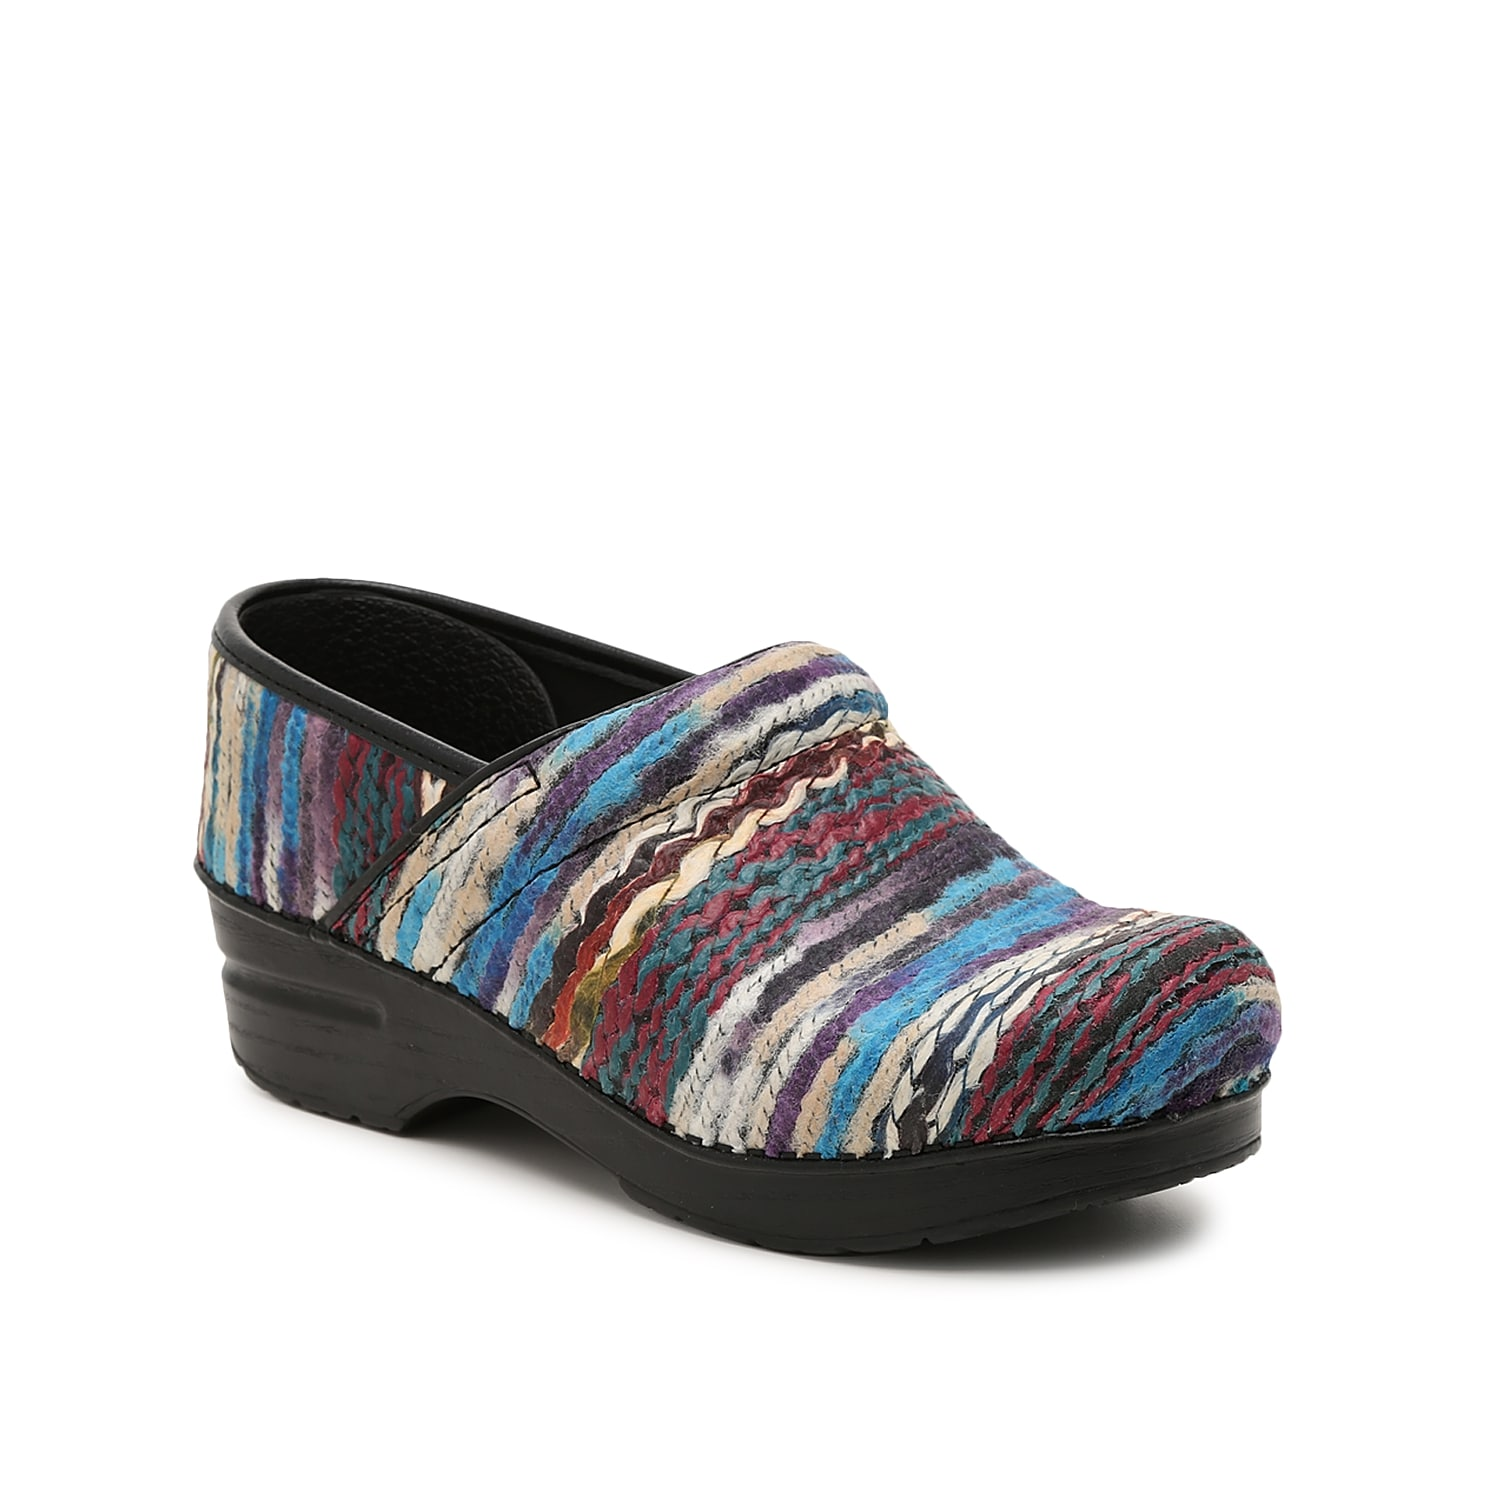 For a long day on your feet, feel supported when wearing the Professional clog from Dansko. This slip-on features a coated yarn upper and a chunky midsole that helps keep you on your toes comfortably!